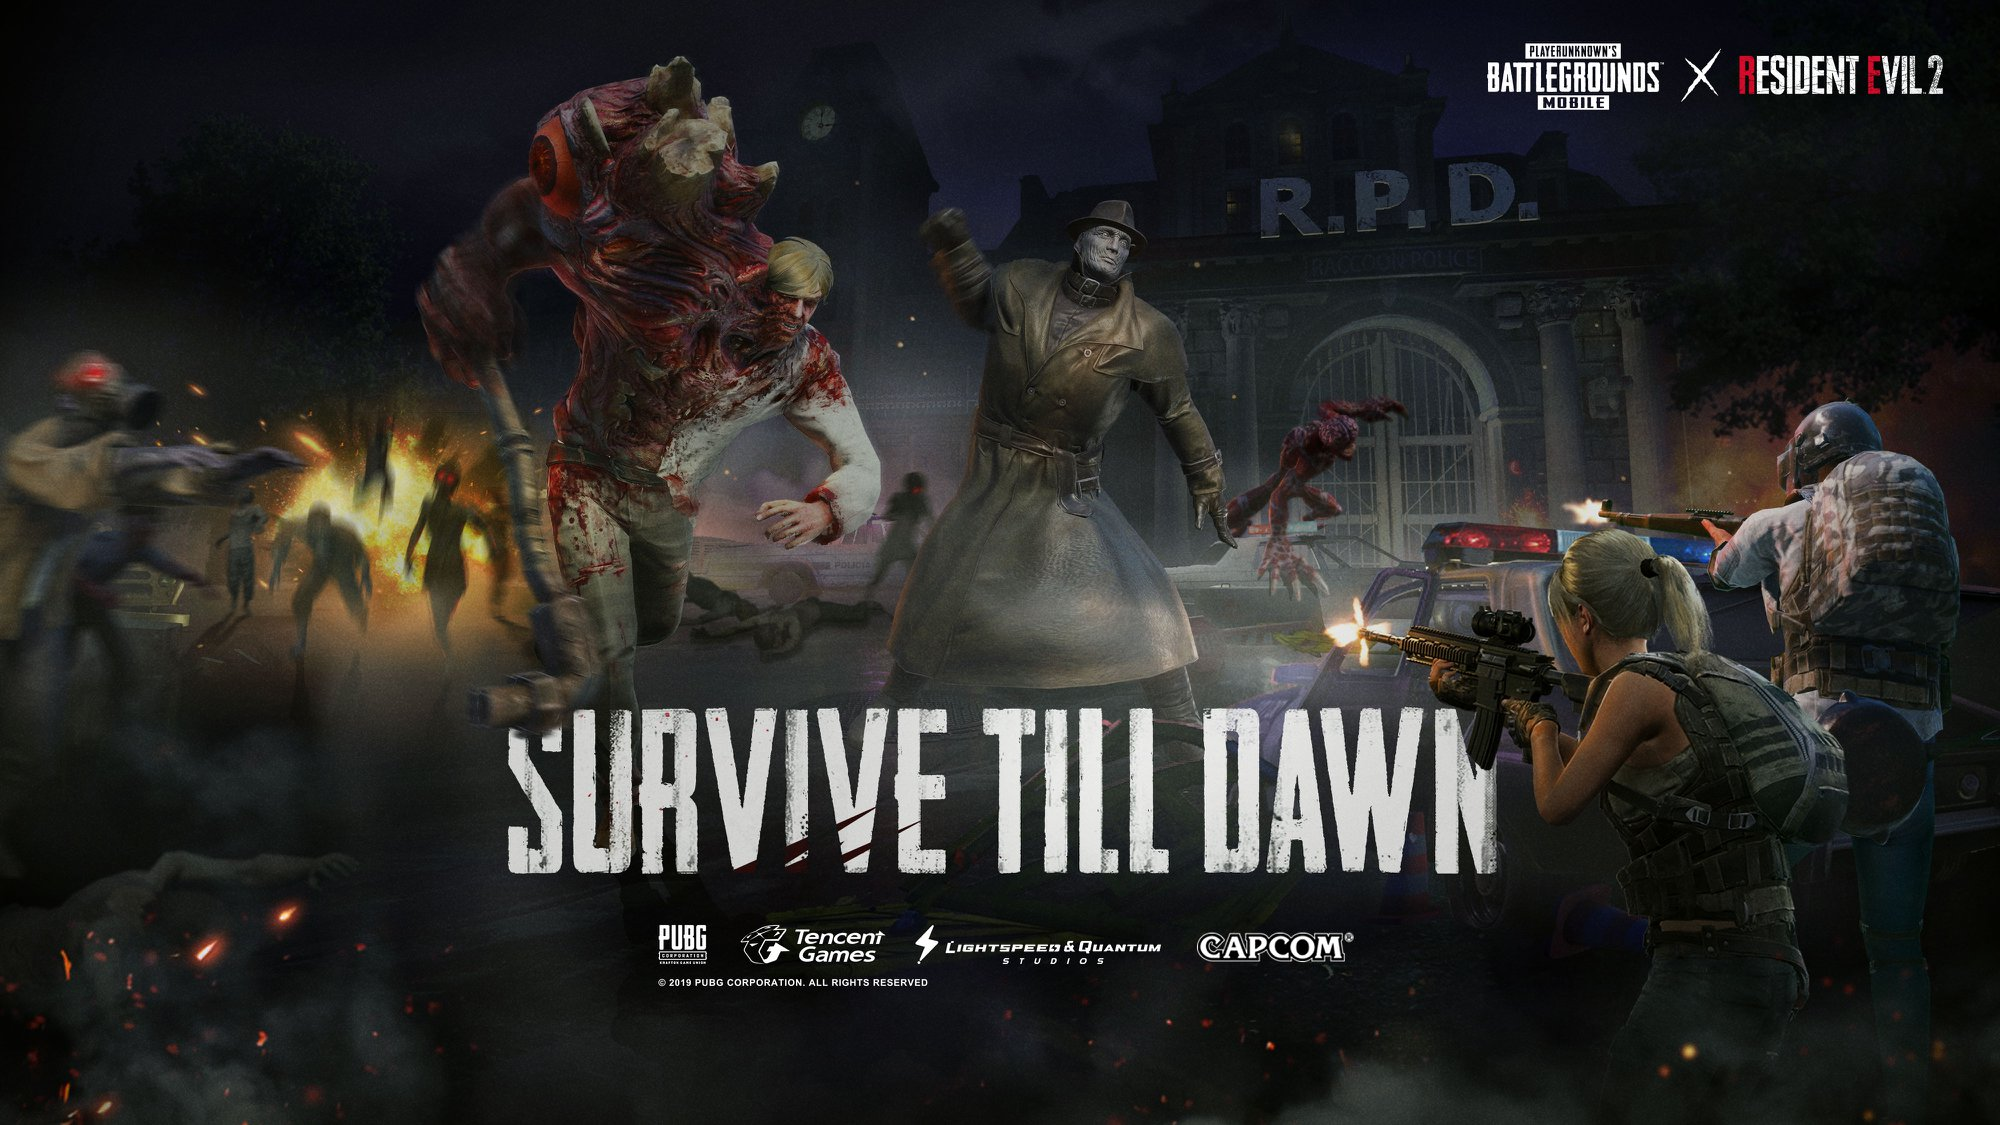 PUBG Mobile v0 11 0 update adds Resident Evil 2 zombies in a